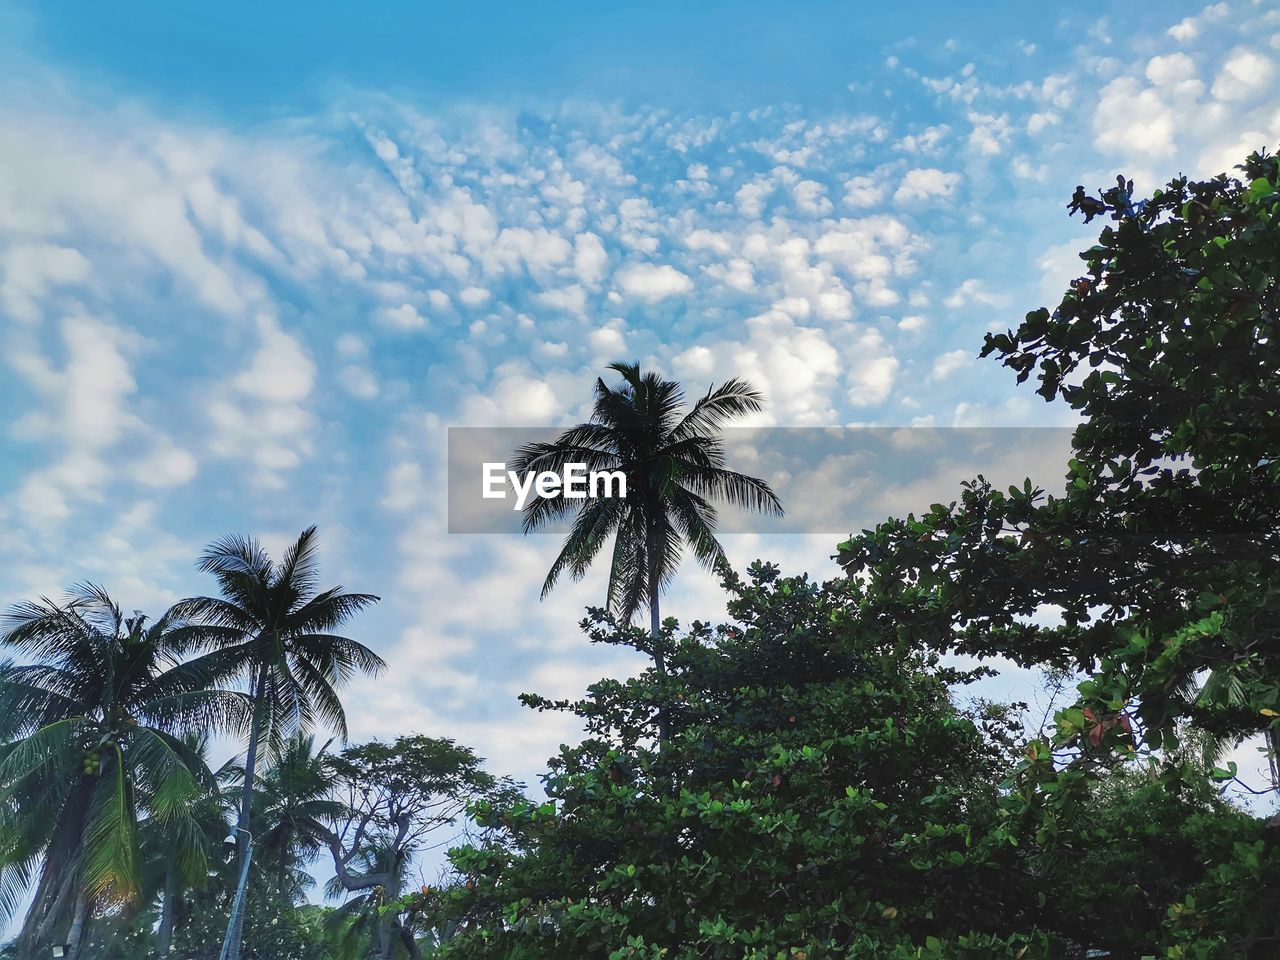 sky, plant, tree, palm tree, tropical climate, cloud - sky, growth, low angle view, beauty in nature, nature, no people, scenics - nature, coconut palm tree, day, tranquility, outdoors, tall - high, leaf, tranquil scene, green color, tropical tree, palm leaf